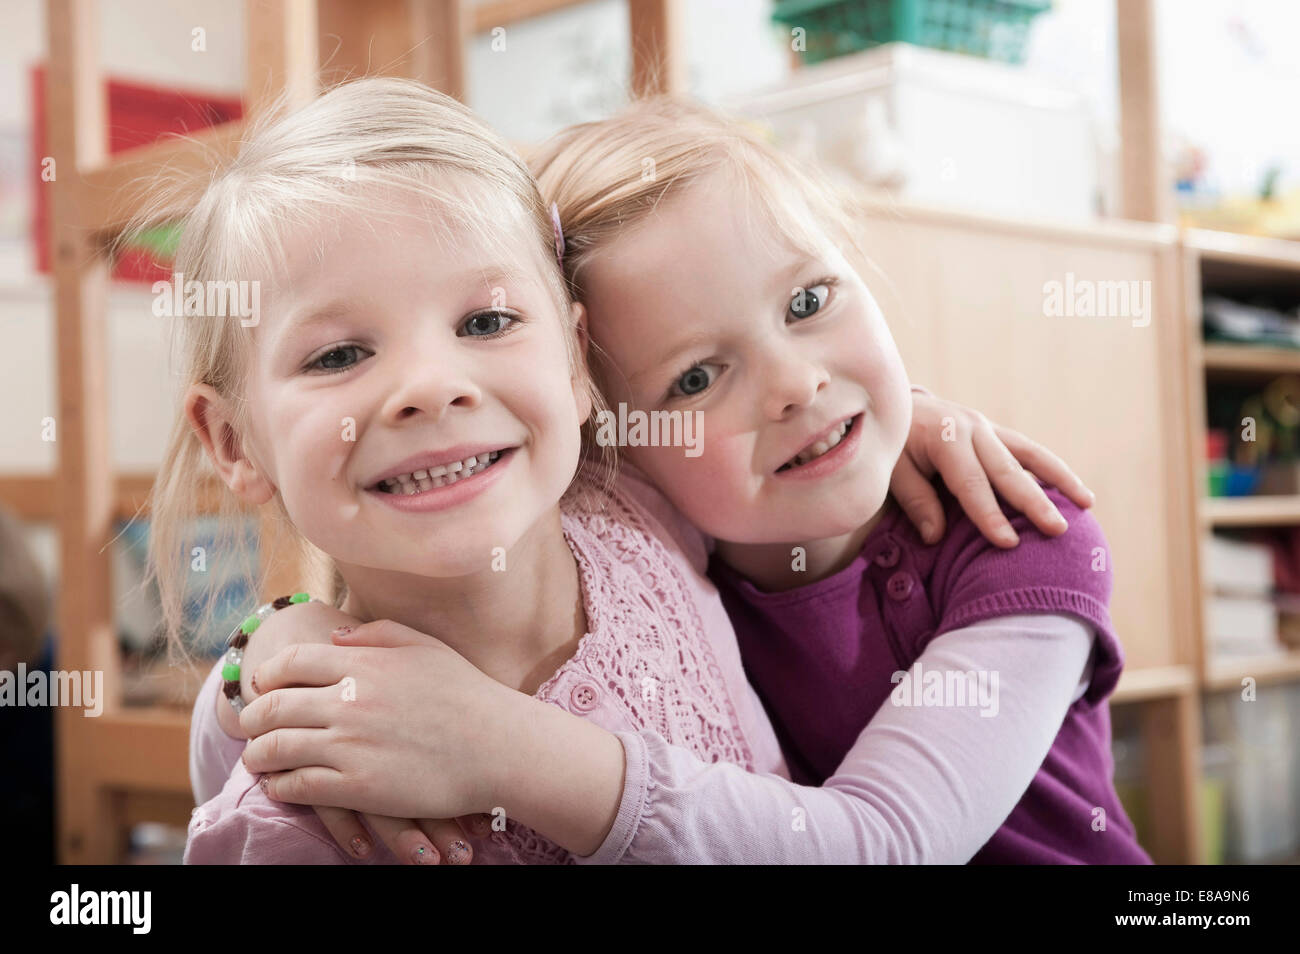 kindergarten girl side Portrait of two little girls, best friends, side by side in kindergarten -  Stock